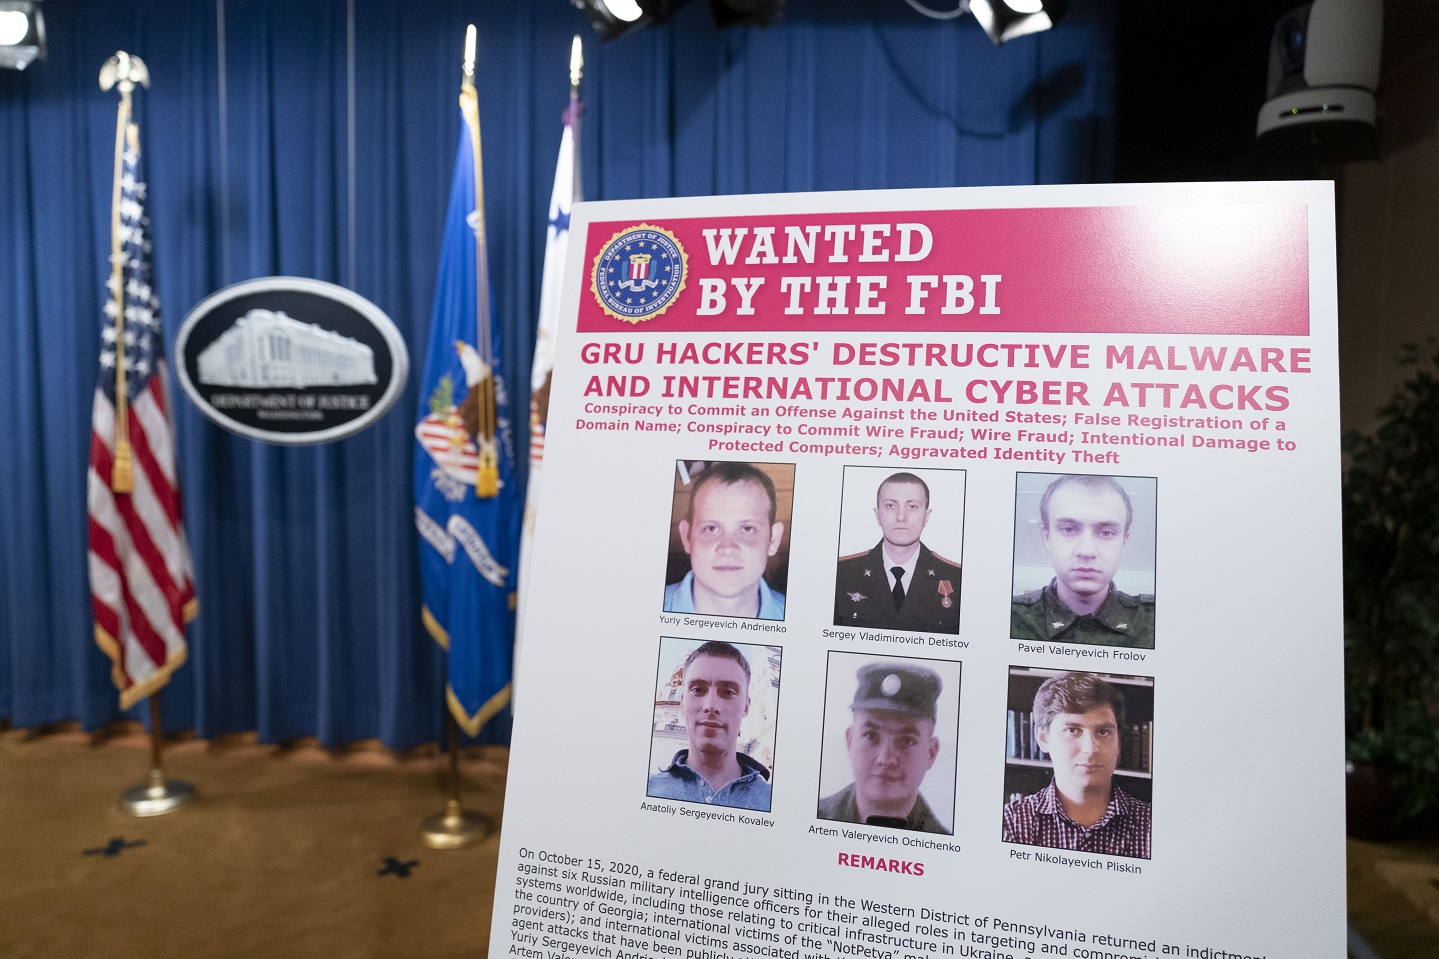 A poster showing six wanted Russian military intelligence officers is displayed before a news conference at the Department of Justice, on October 19, 2020 in Washington, DC.